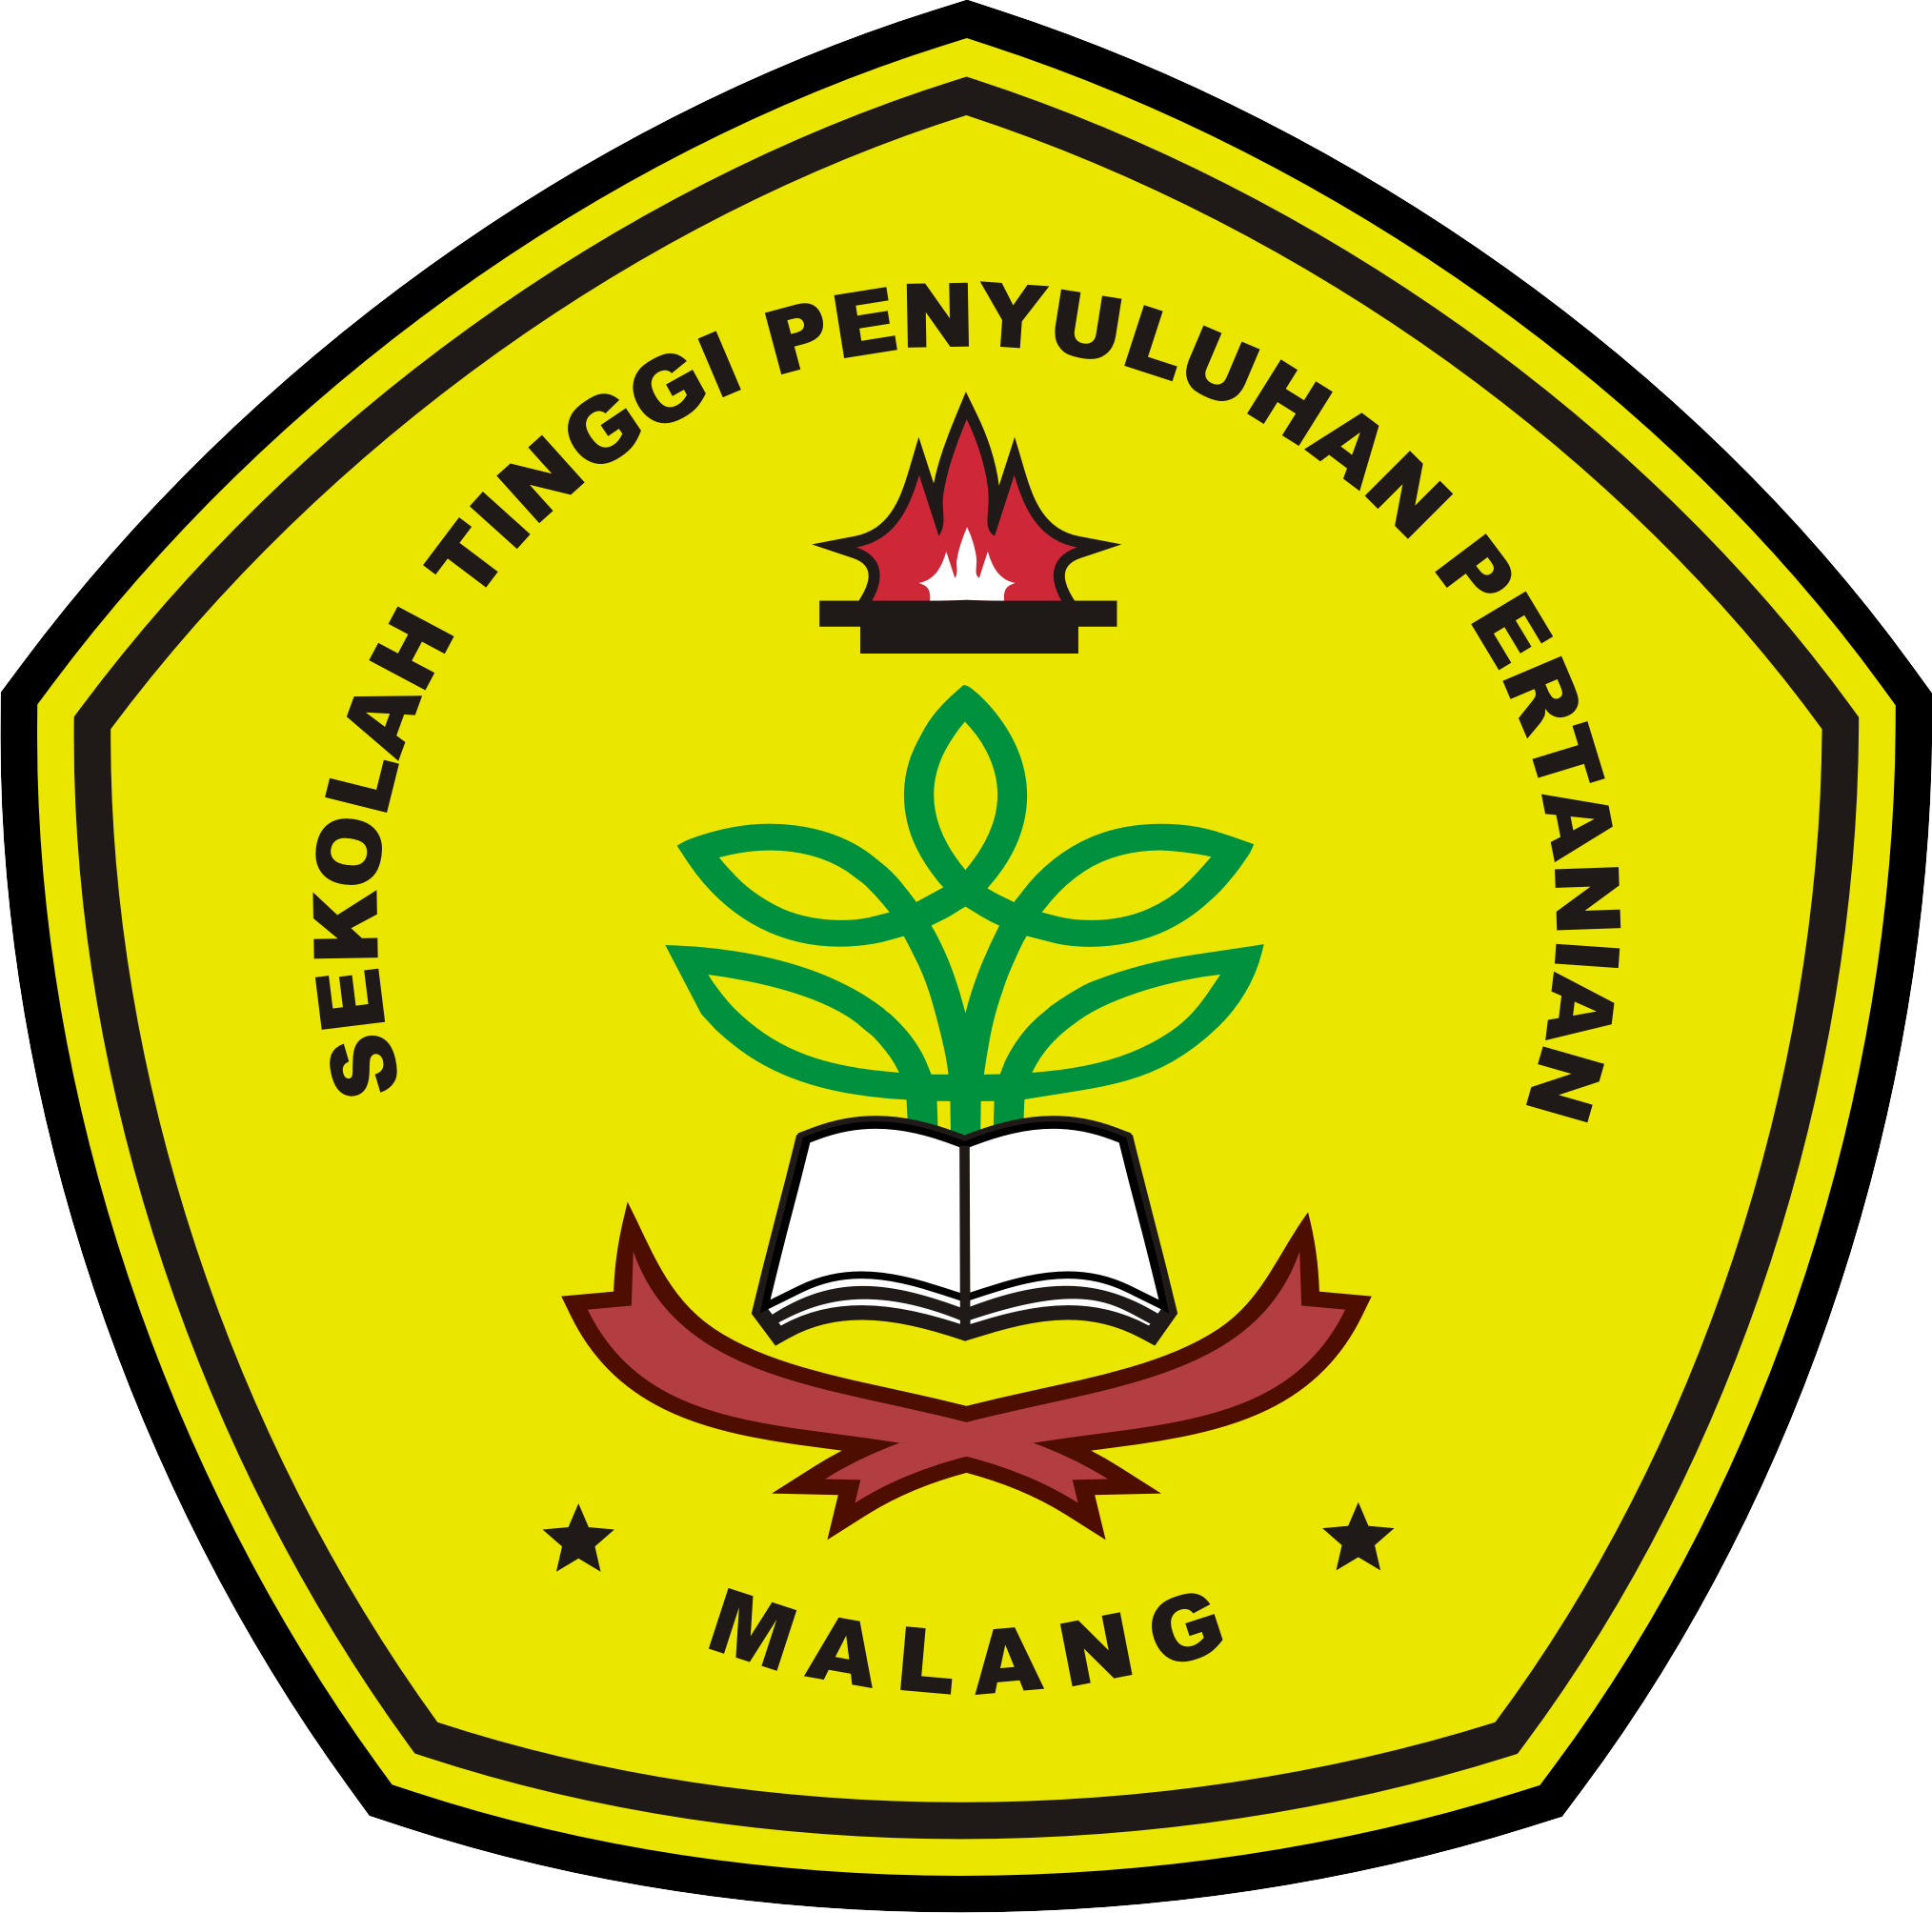 filelogo stpp malangpng wikimedia commons